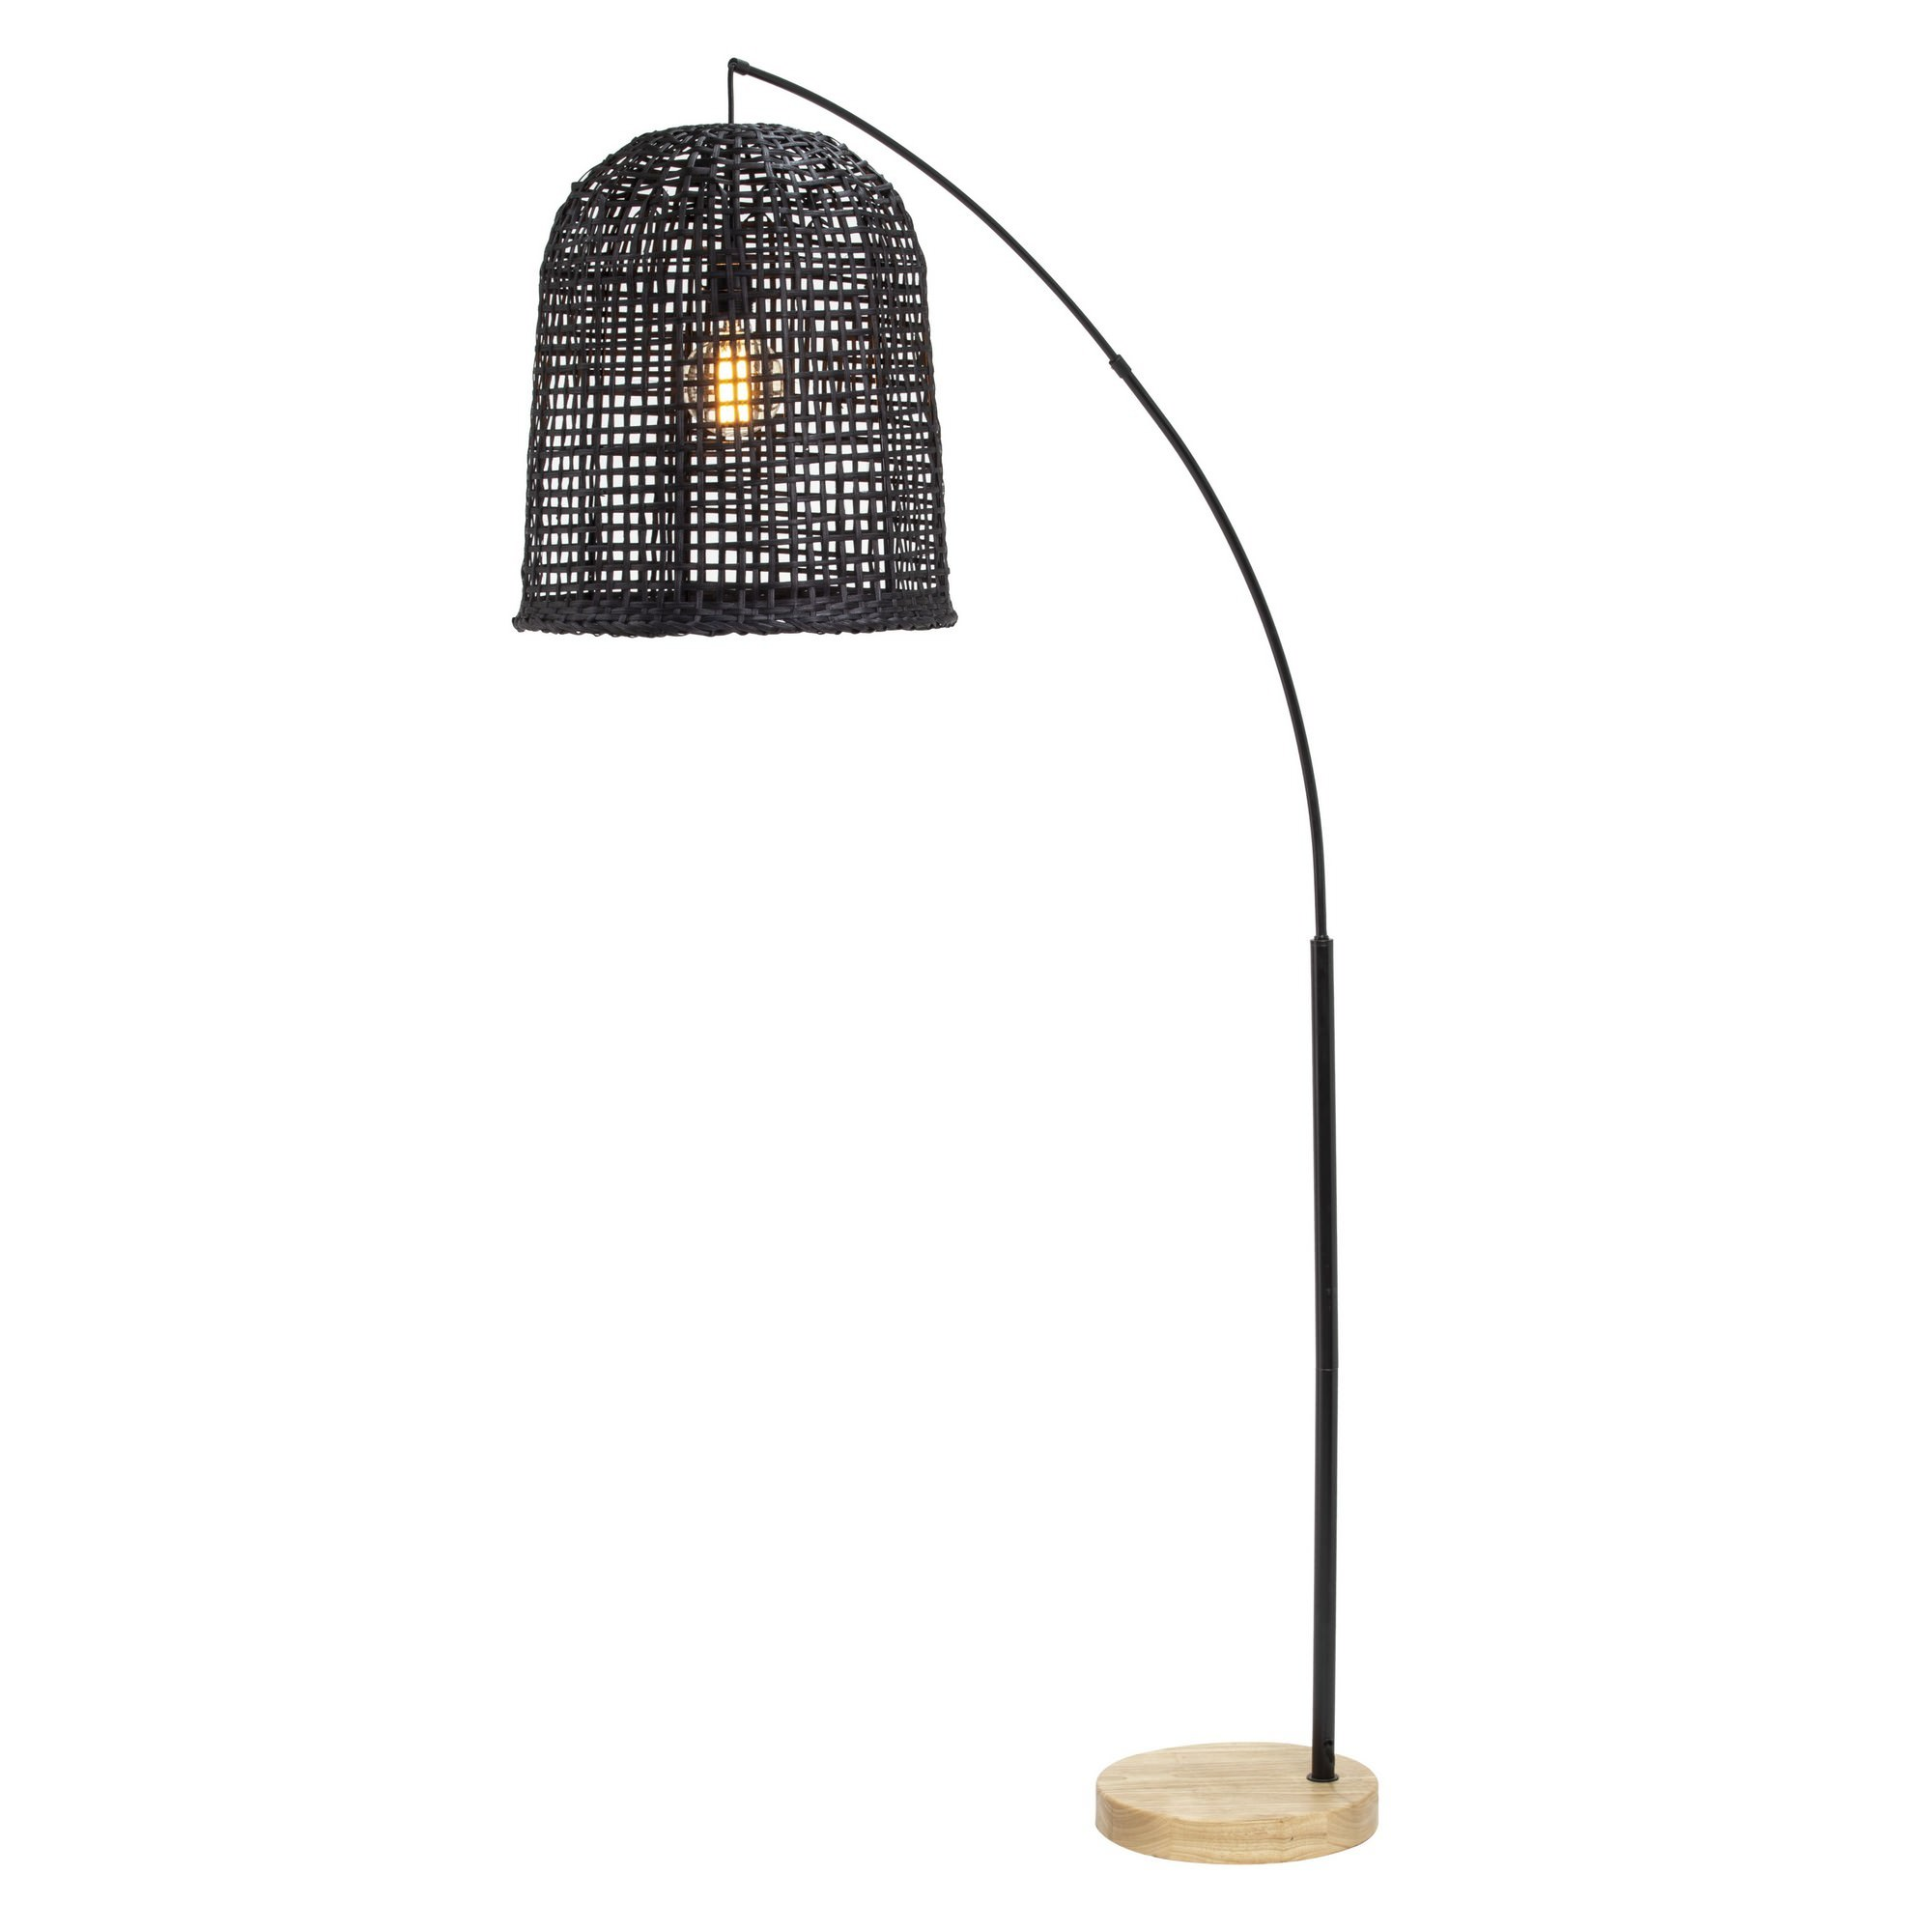 Image of: Weave Rattan Shade Arc Floor Lamp